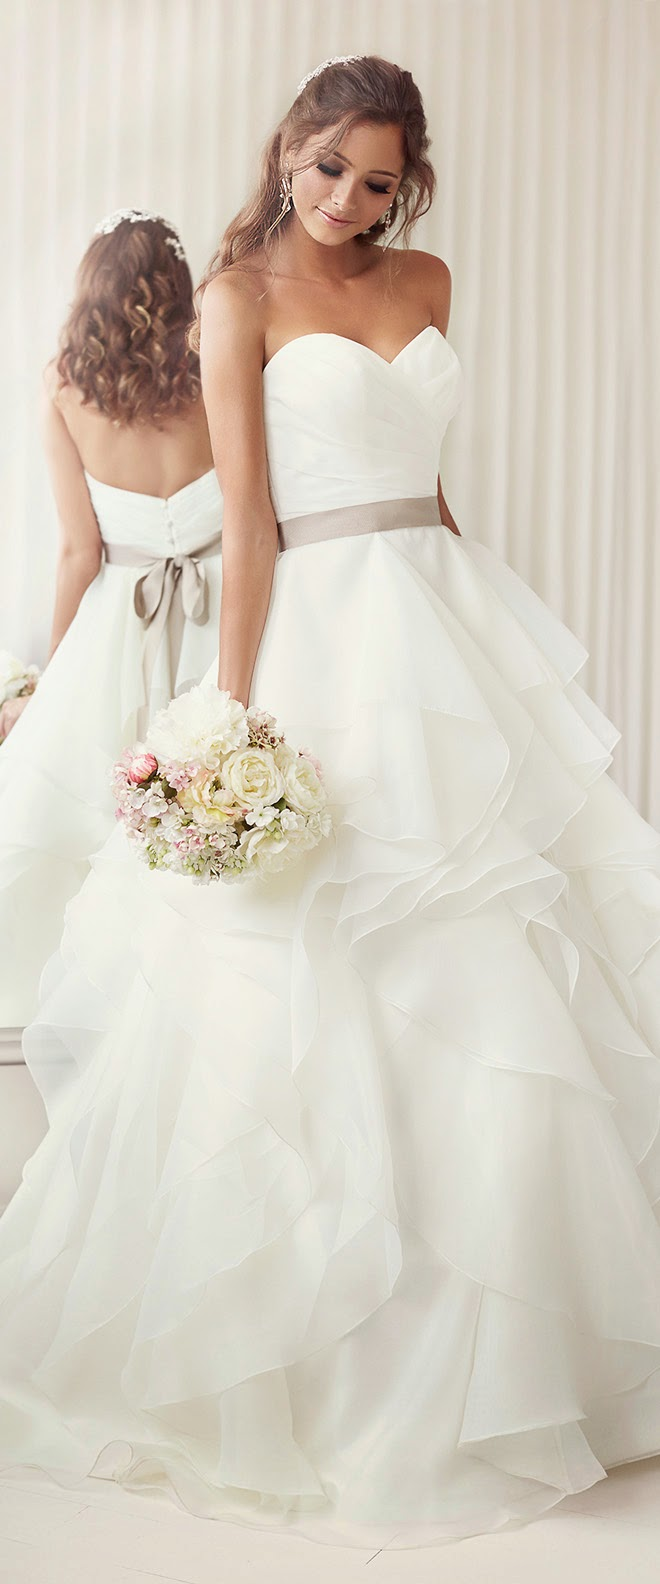 Best Wedding Dresses 2014